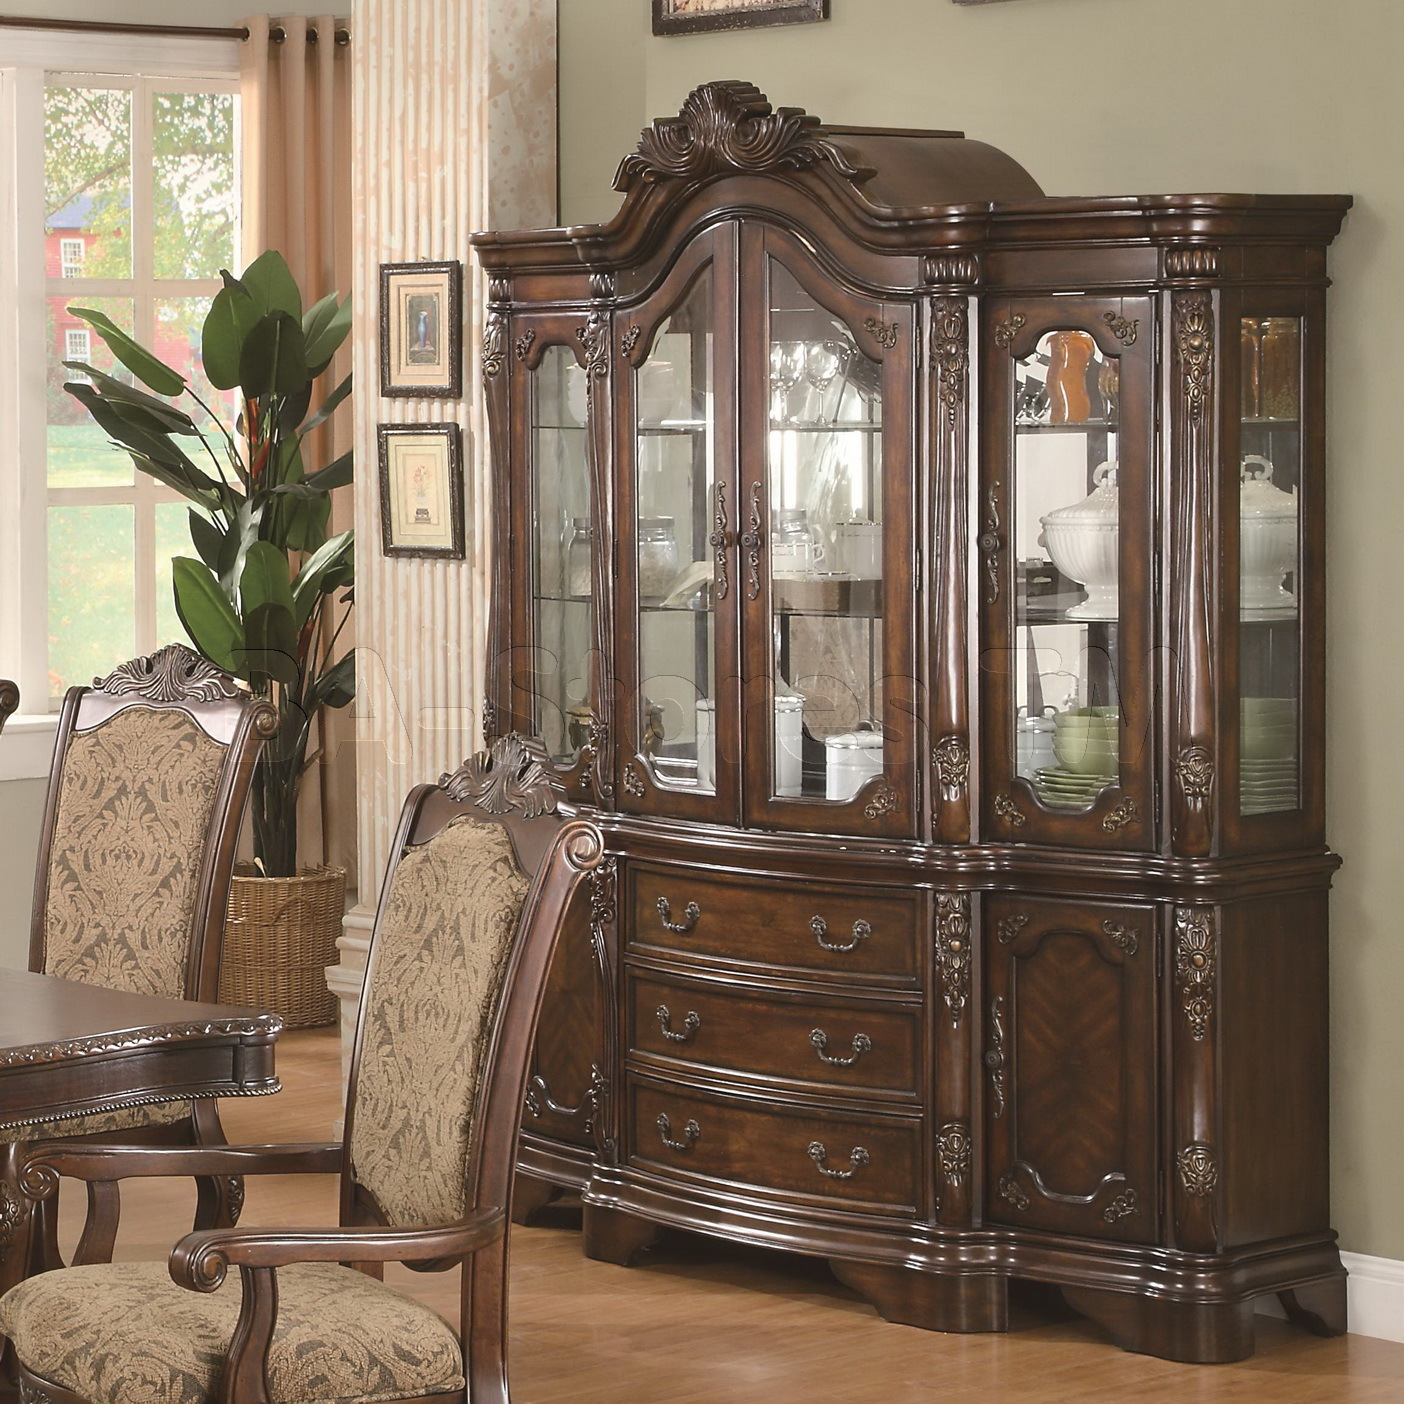 Hutch For Dining Room: Wood Hutch Dining Room